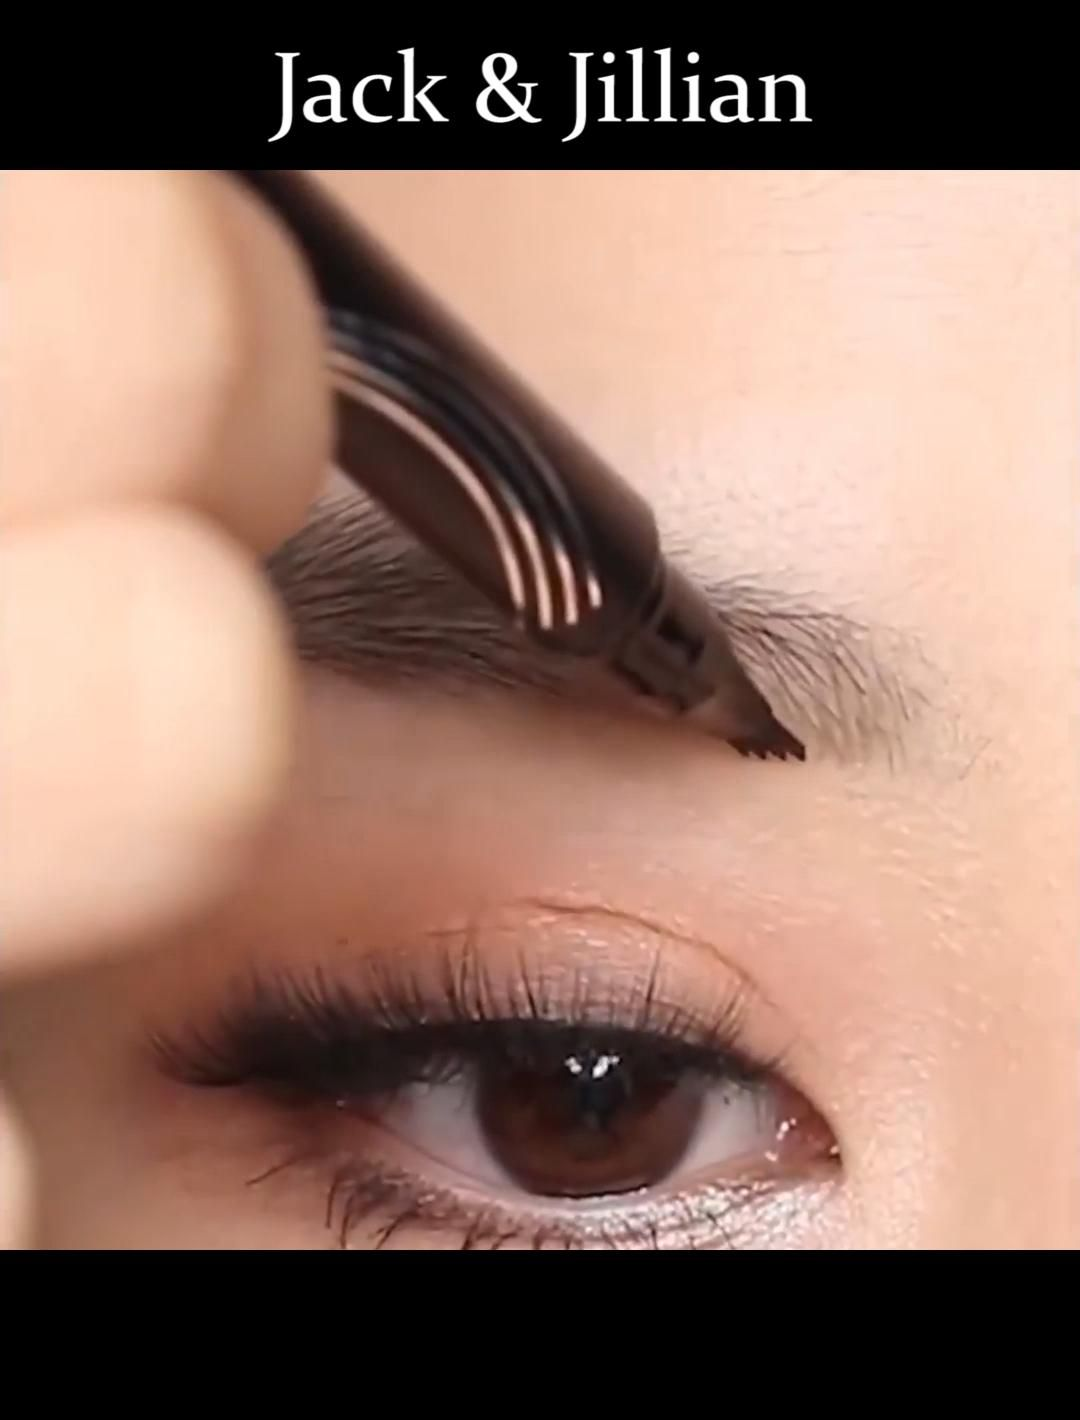 Flawless Eyebrows In Seconds - Omg I love it!! - 42% OFF Limited Time!